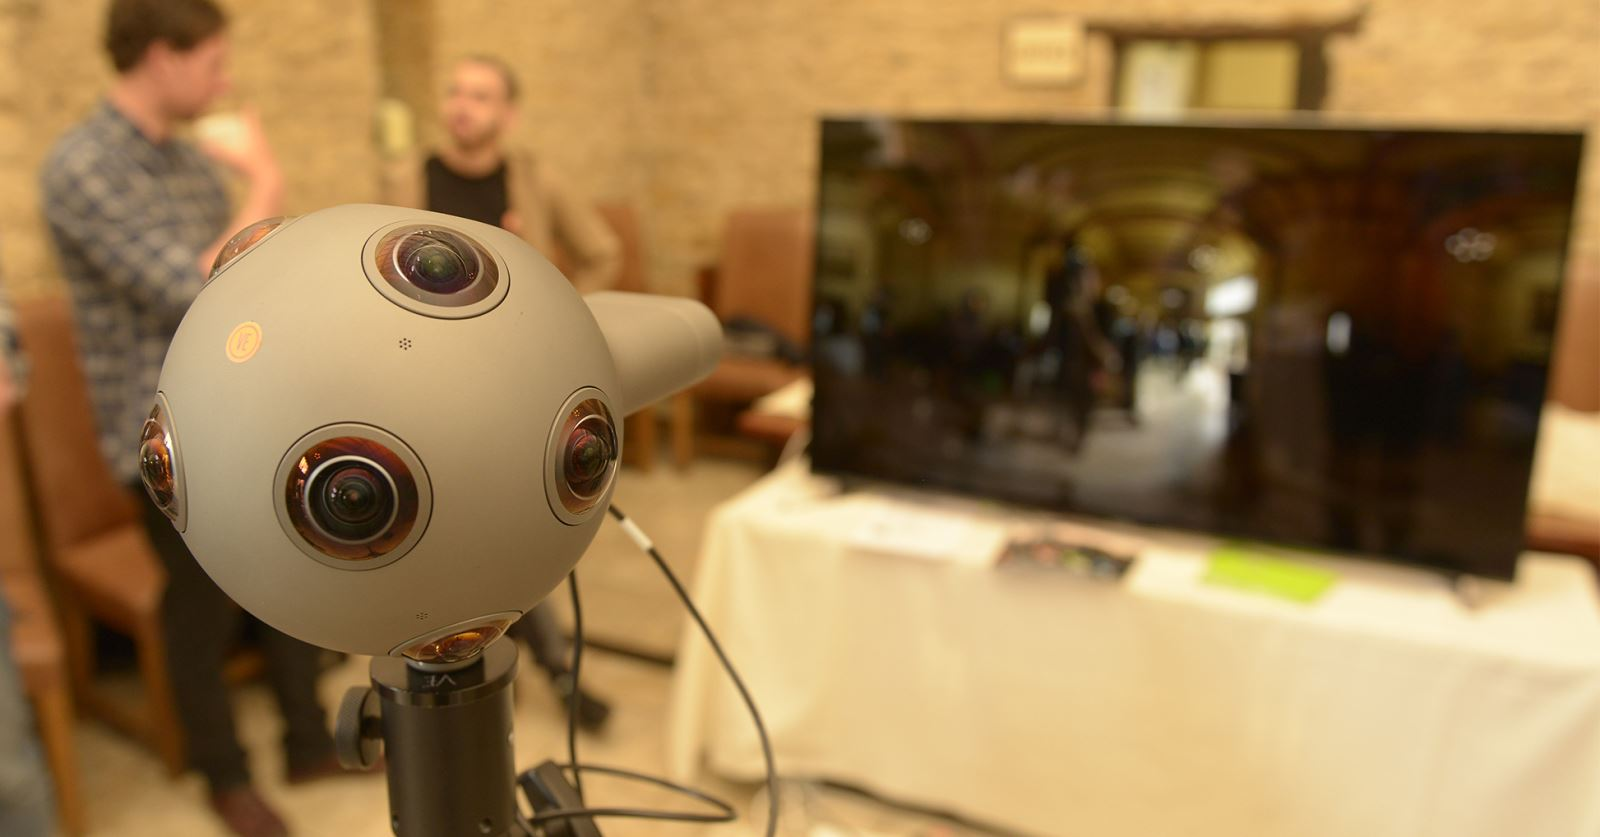 The 360 Nokia Ozo provided by GTC sponsors Video Europe attracted lots of attention